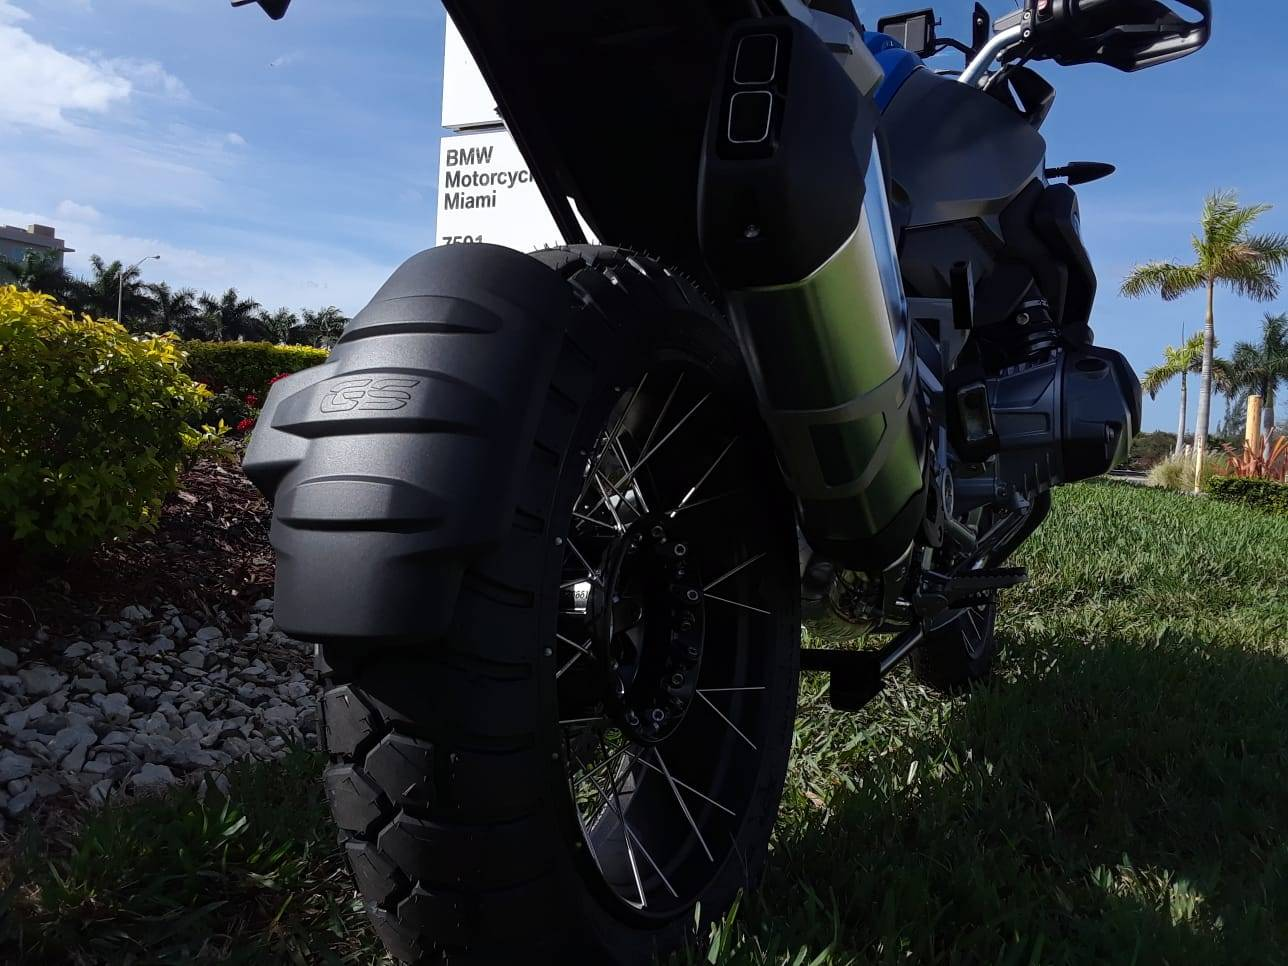 New 2019 BMW R 1250 GS for sale, New BMW R 1250GS, BMW R1250GS for sale, 1250GS, R1250GS, BMW Motorcycles of Miami, Motorcycles of Miami. Motorcycles Miami - Photo 31